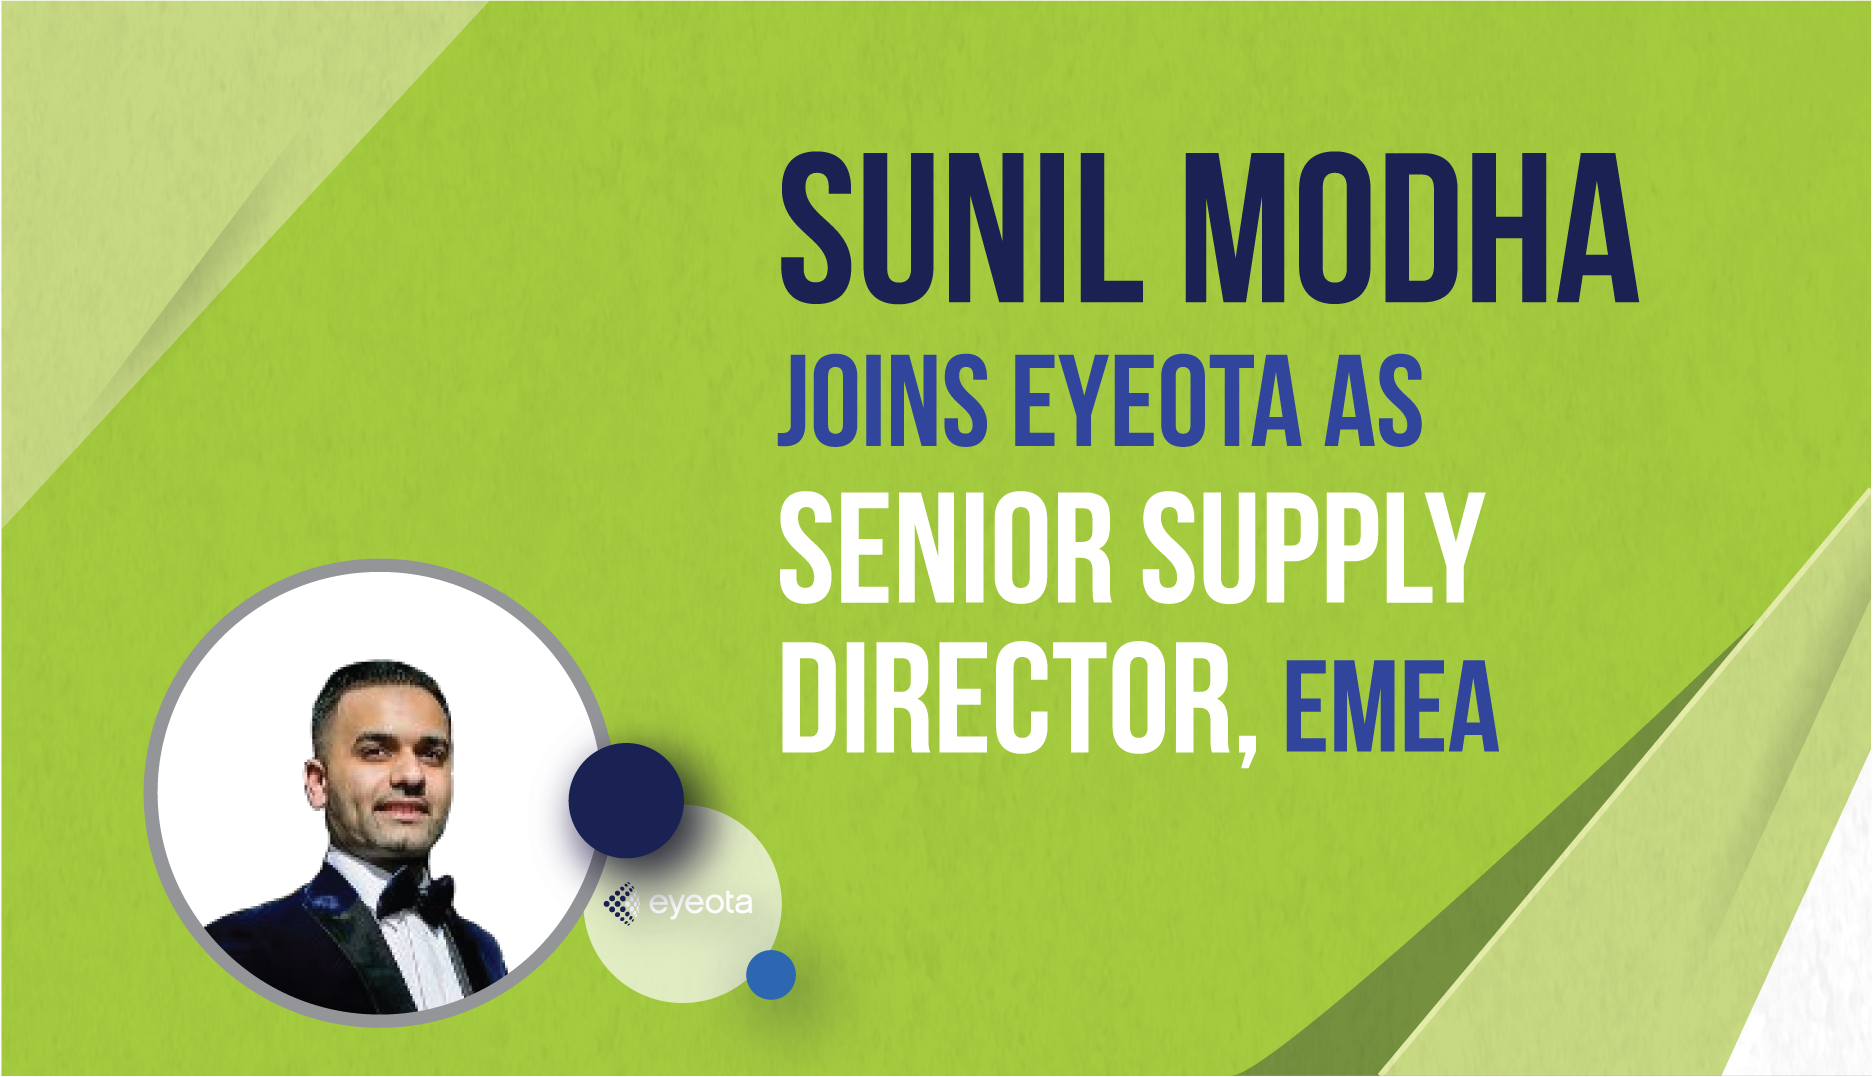 Sunil Modha Joins Eyeota as Senior Supply Director, EMEA